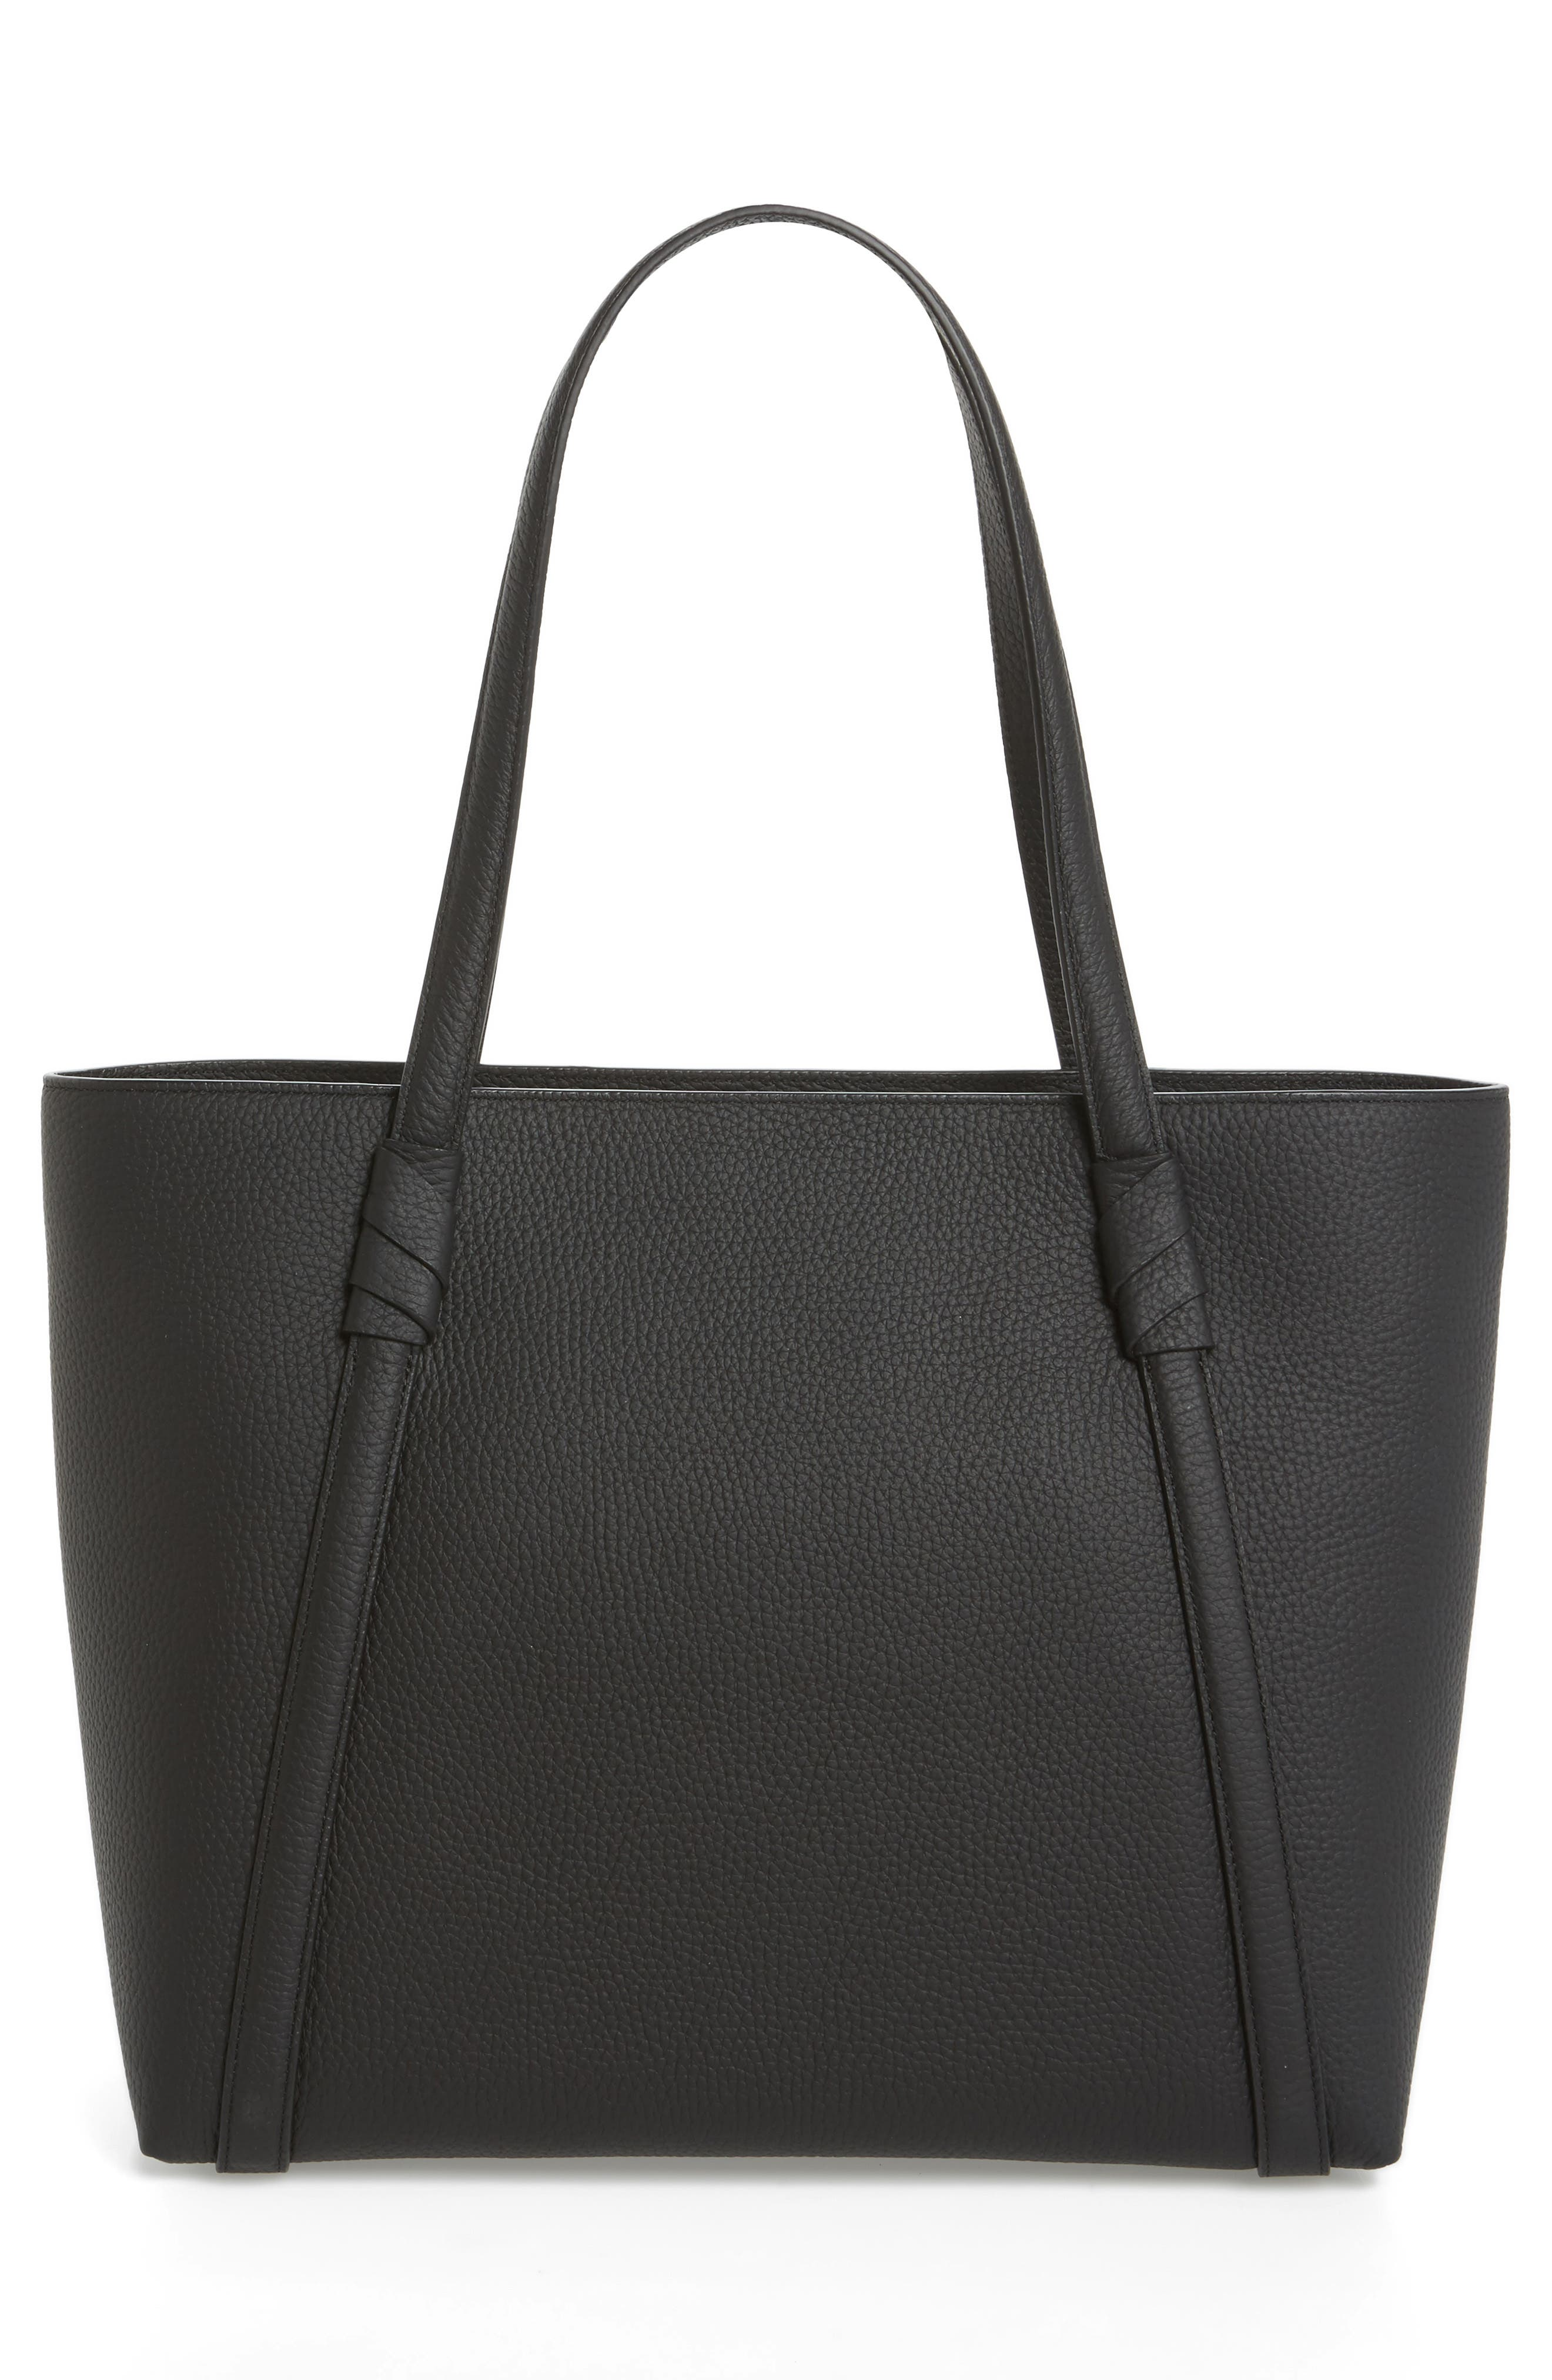 daniels drive - cherie leather tote,                             Alternate thumbnail 2, color,                             Black